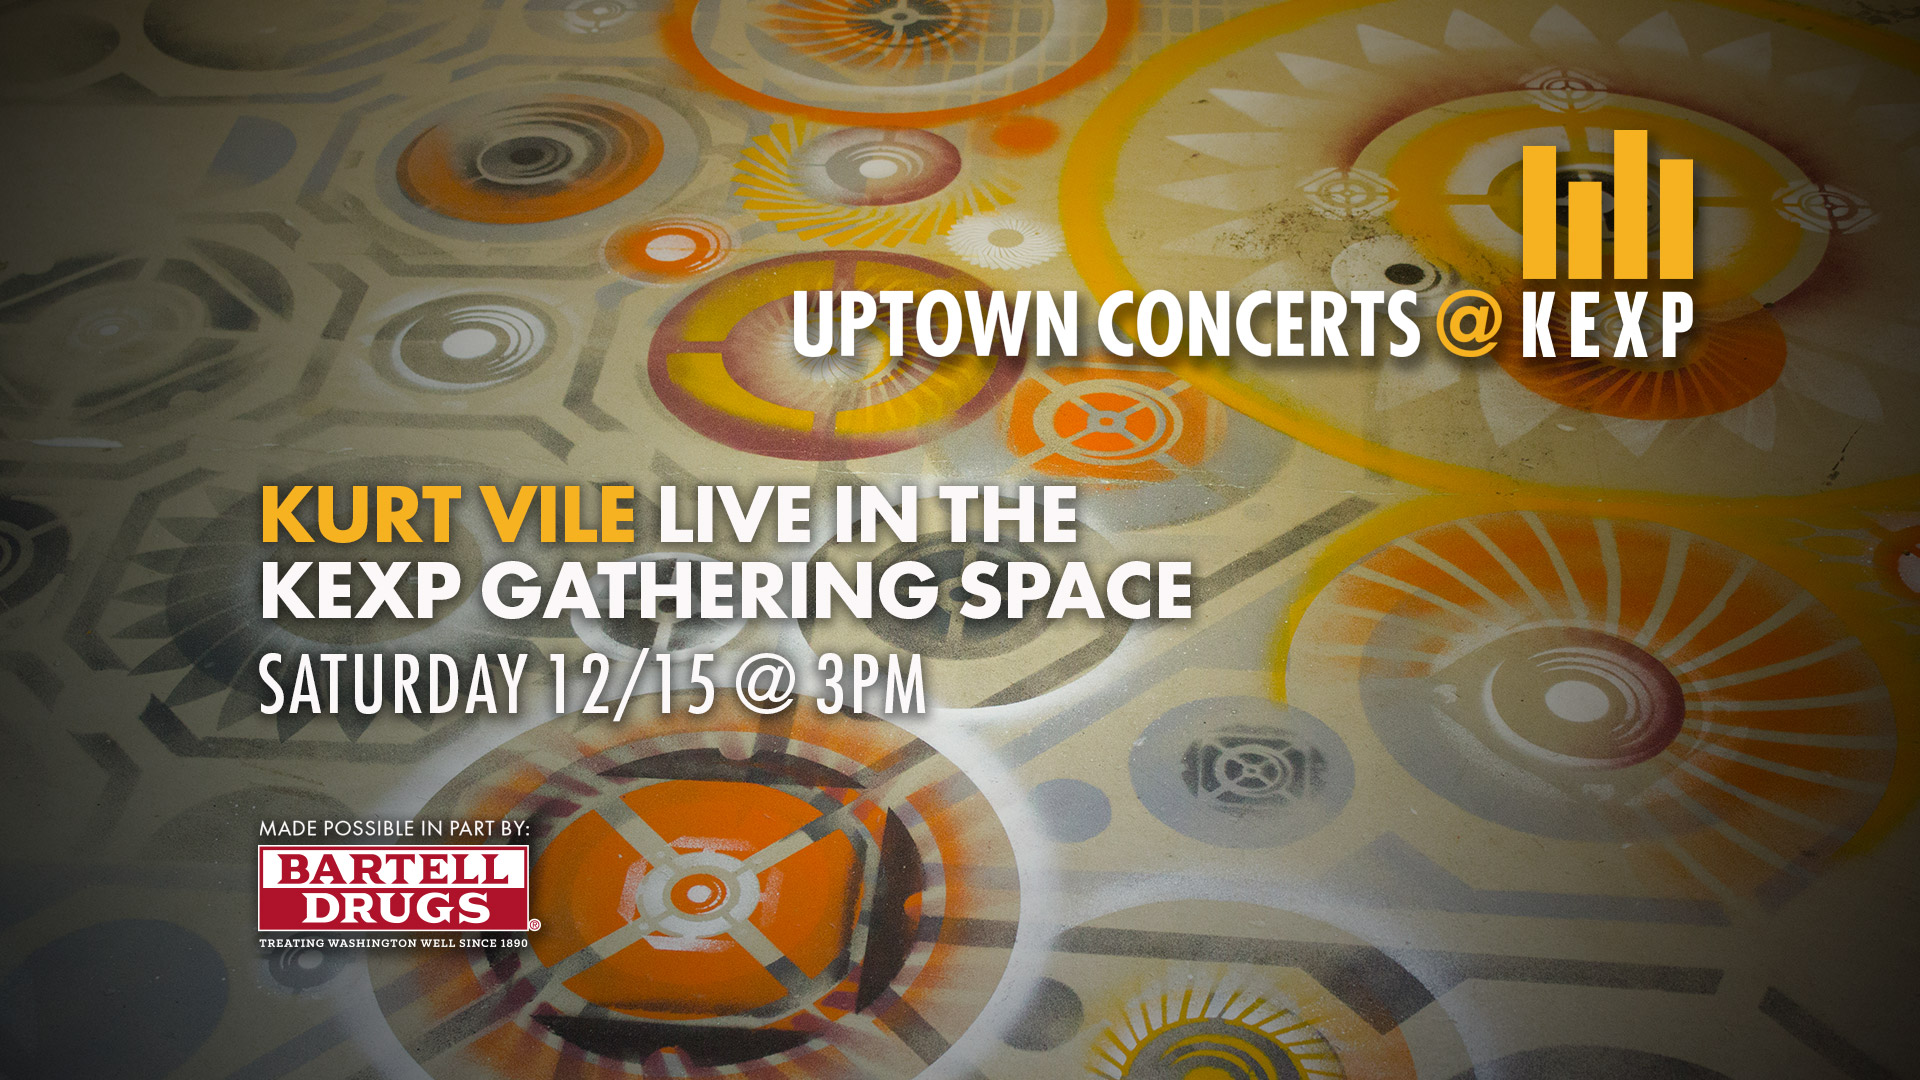 Uptown Concerts